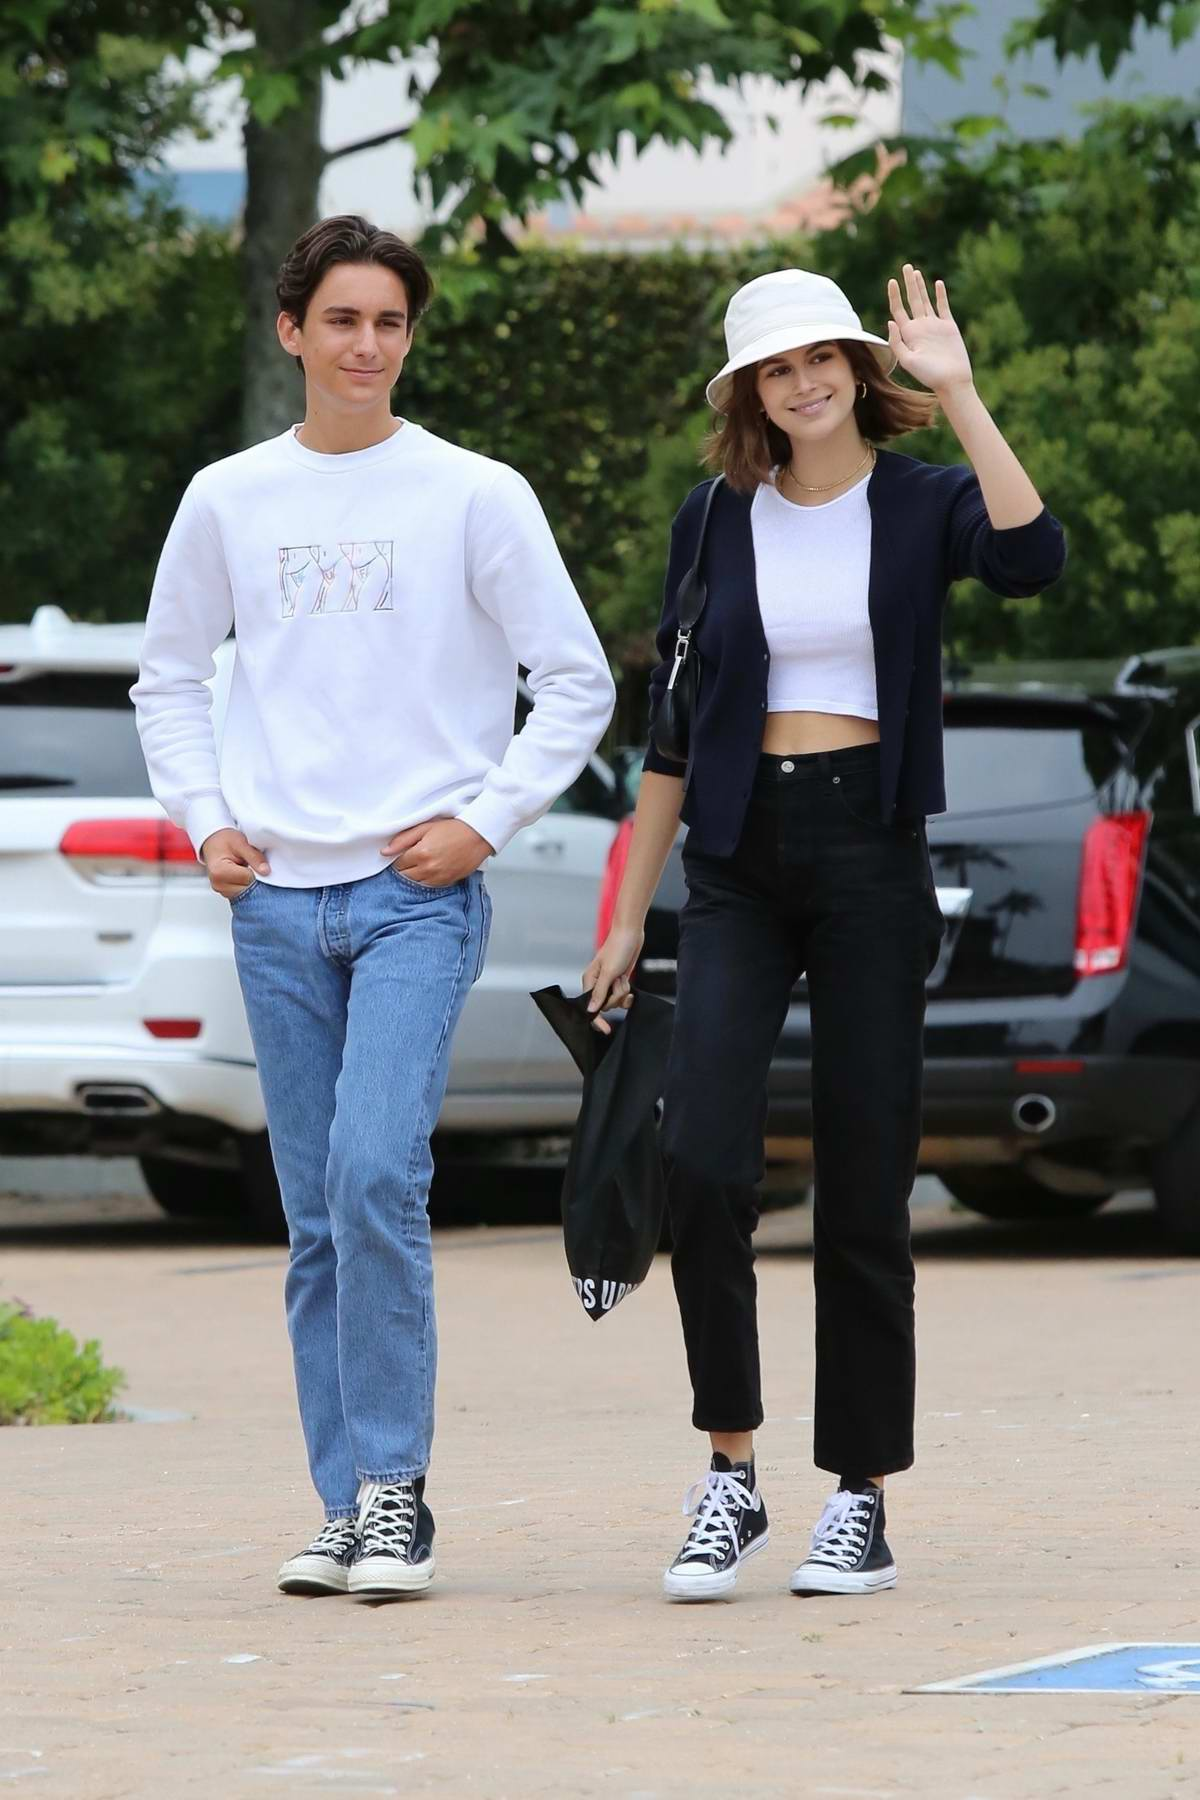 Kaia Gerber keeps it casual as she steps out for some shopping with a friend in Malibu, California